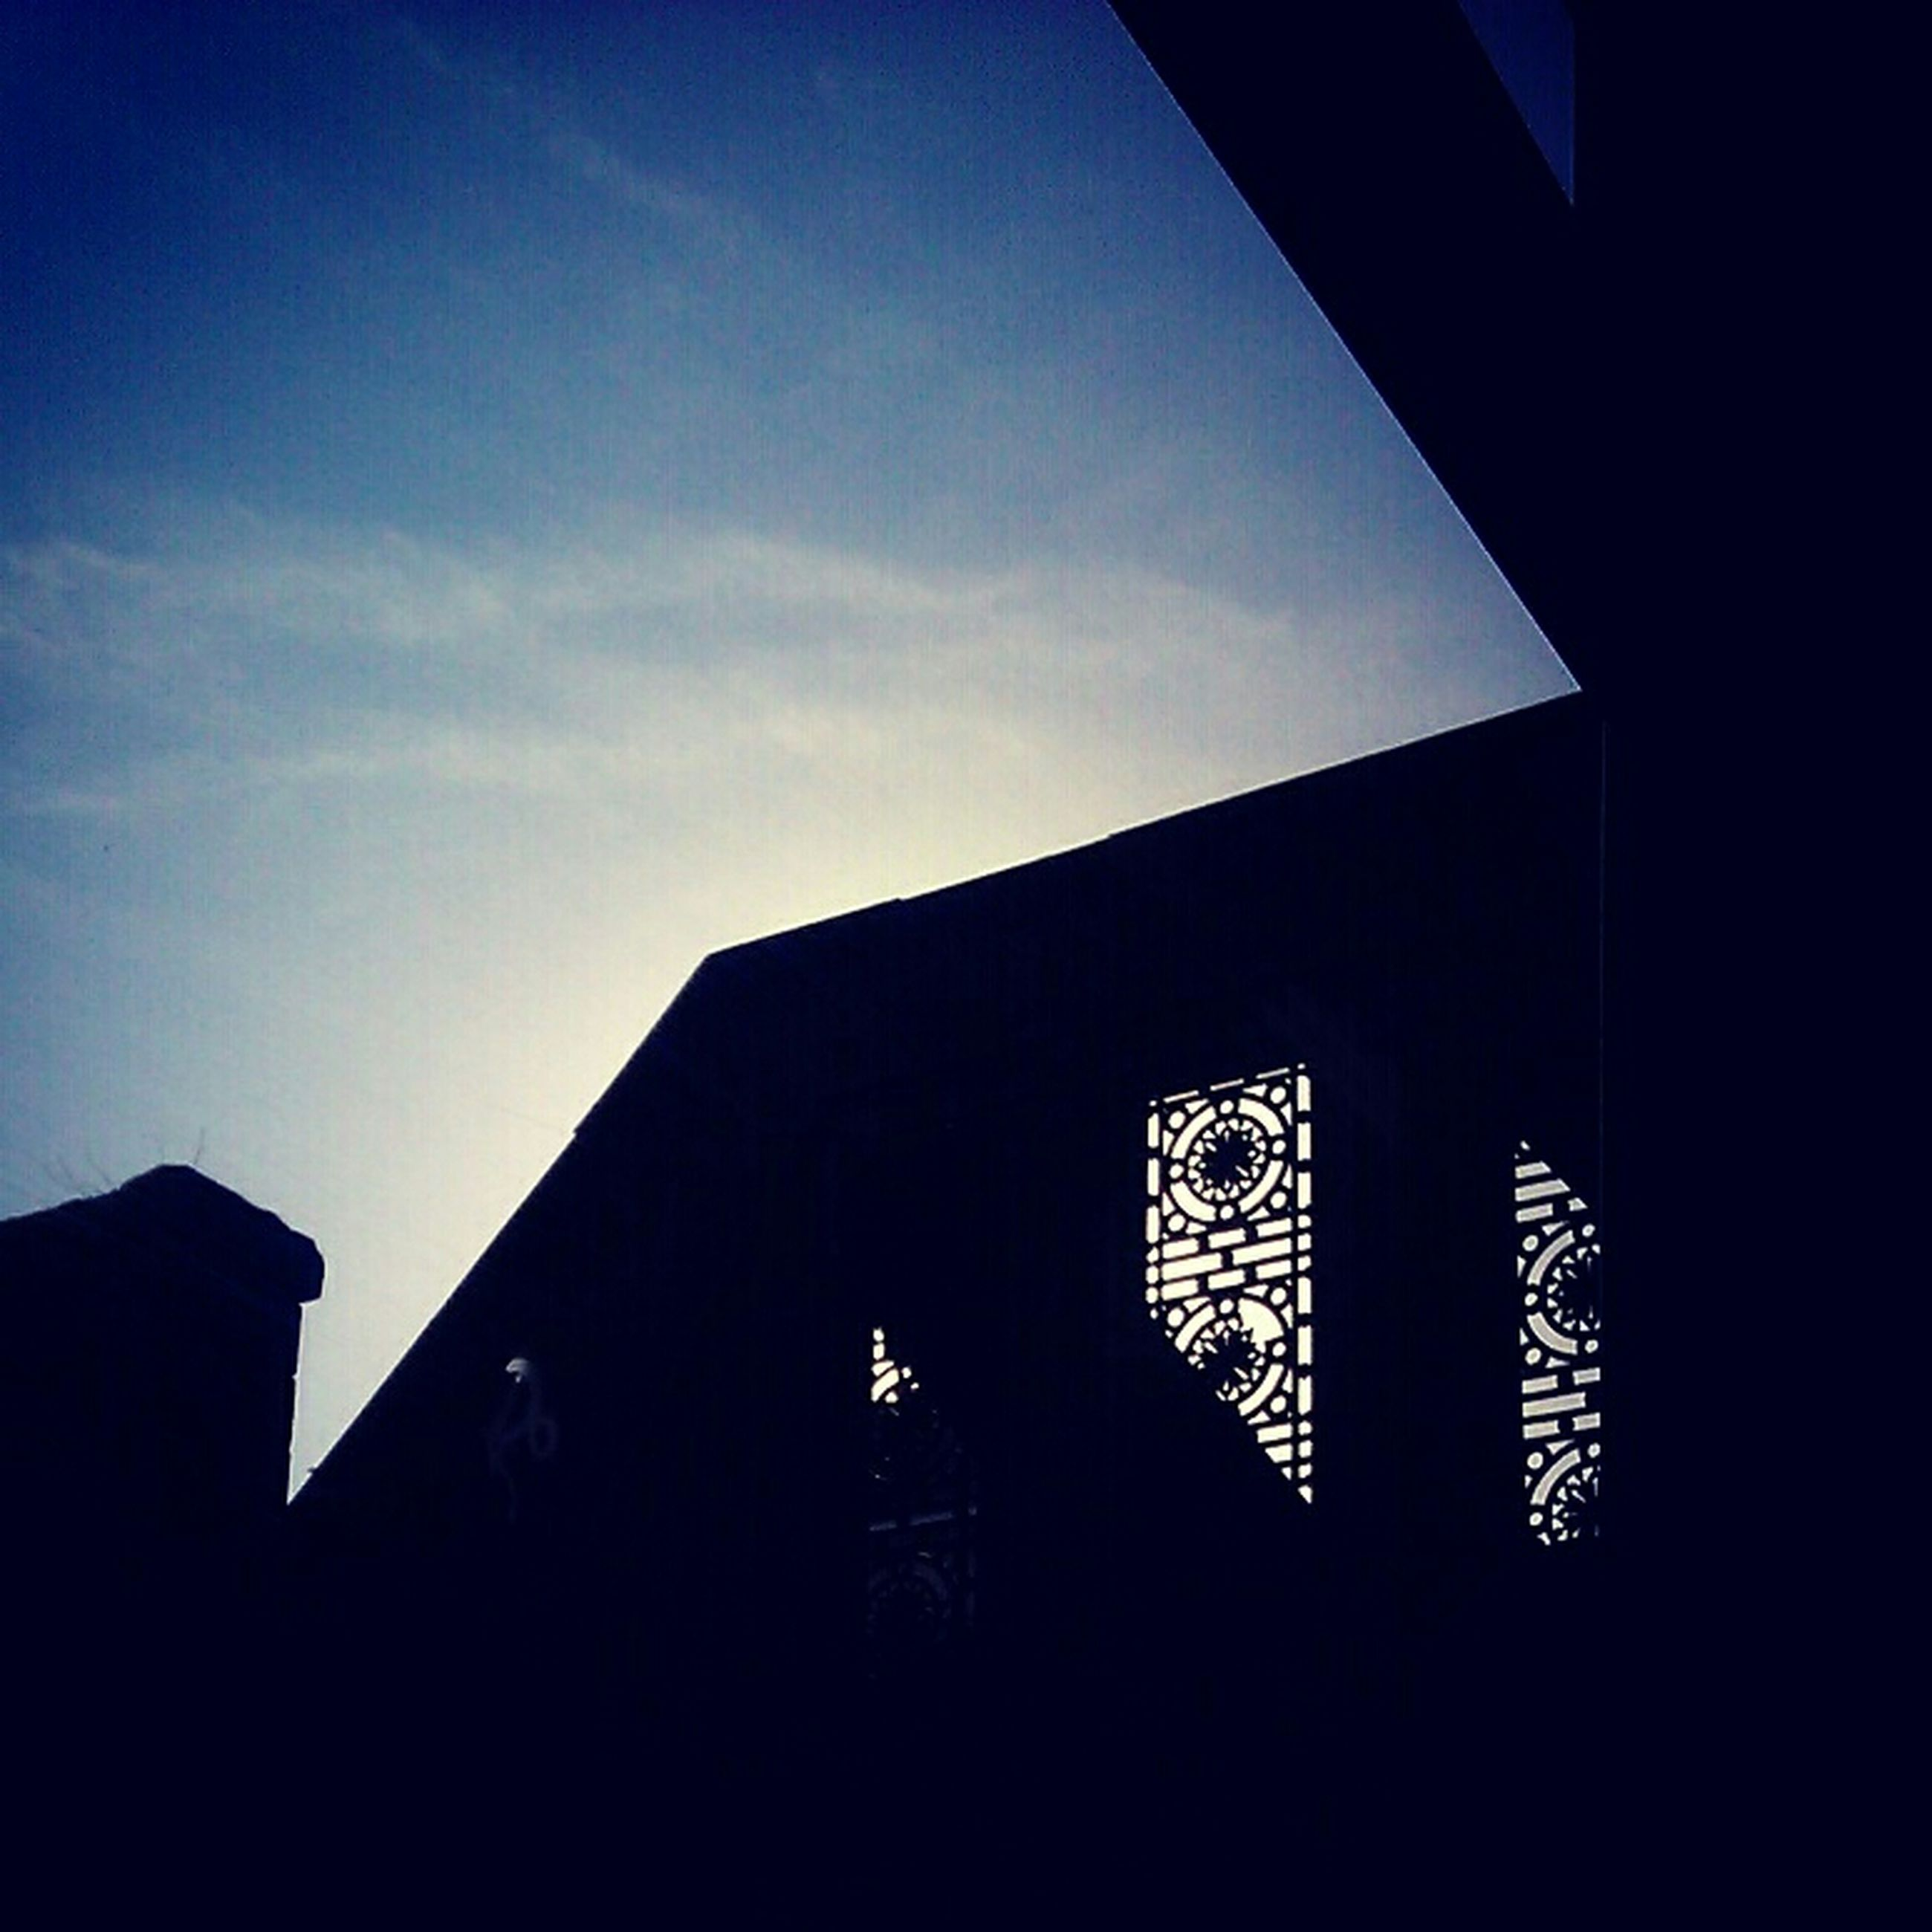 architecture, built structure, silhouette, building exterior, low angle view, sky, sunset, dark, window, sunlight, dusk, outdoors, no people, blue, building, house, cloud, outline, copy space, day